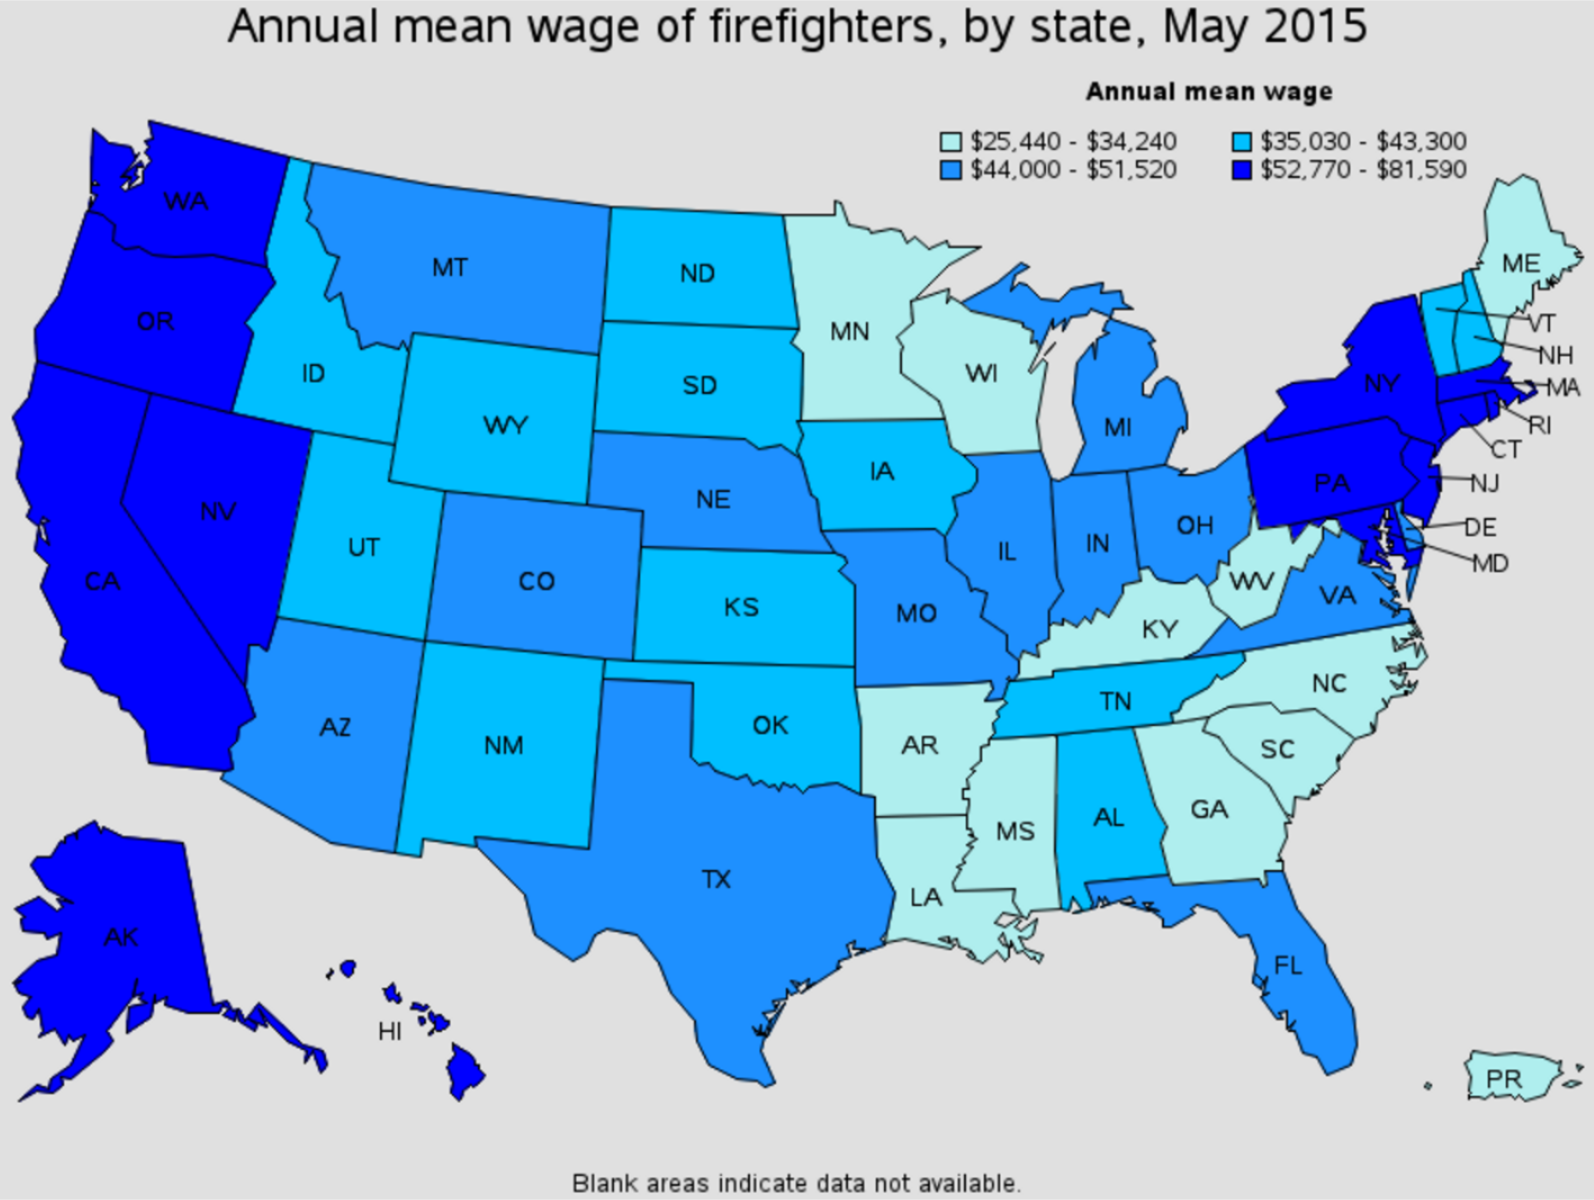 firefighter average salary by state Winfield Illinois